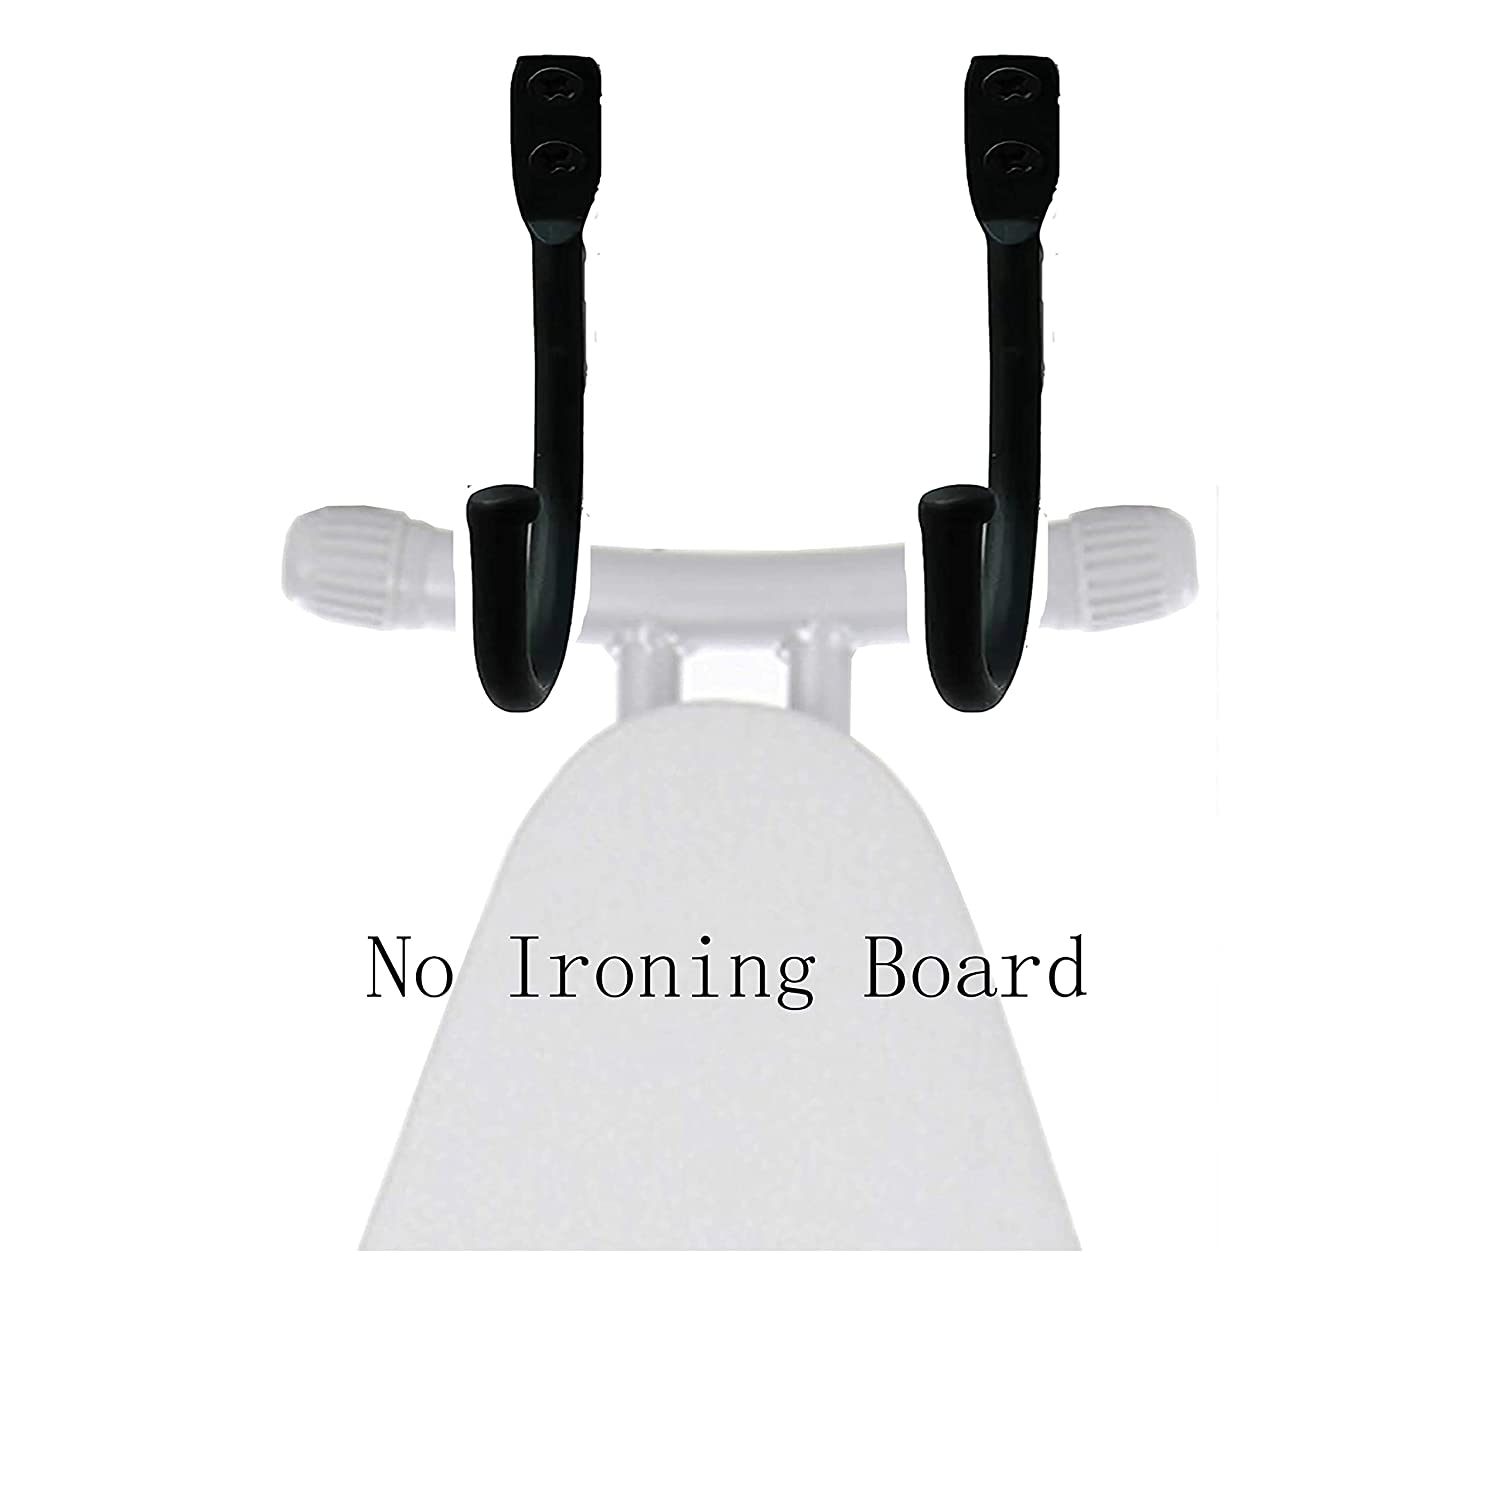 for Laundry Rooms Ironing Board Hanger No Ironing Board Wall Holder Wall Hanger Wall Mount Wall Rack Wall Mount Ironing Board Holder Closets 2-Pcs Utility Rooms